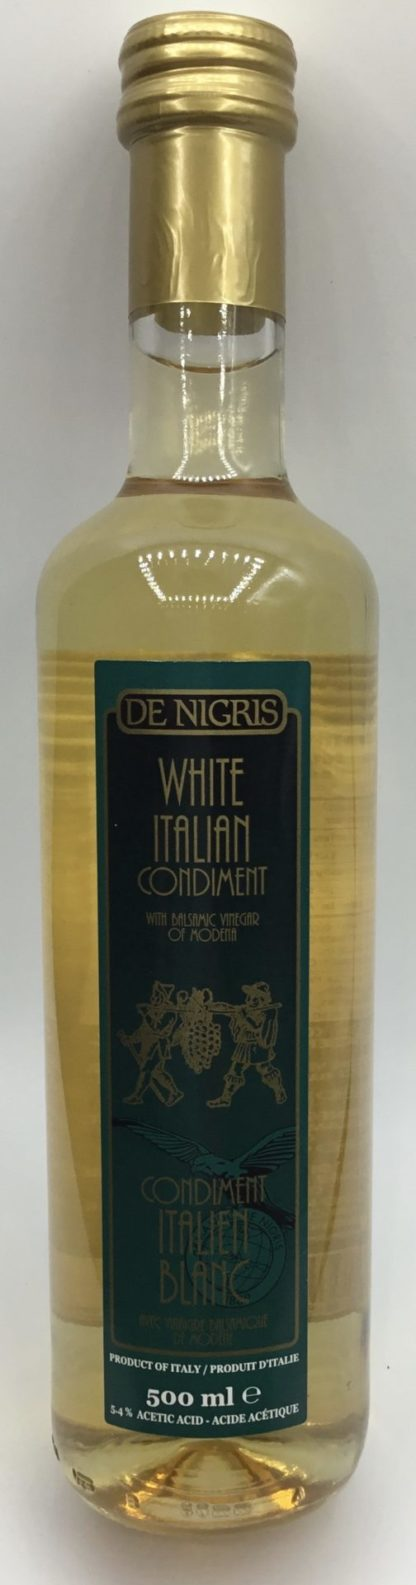 Denigris White Condiment Vinegar